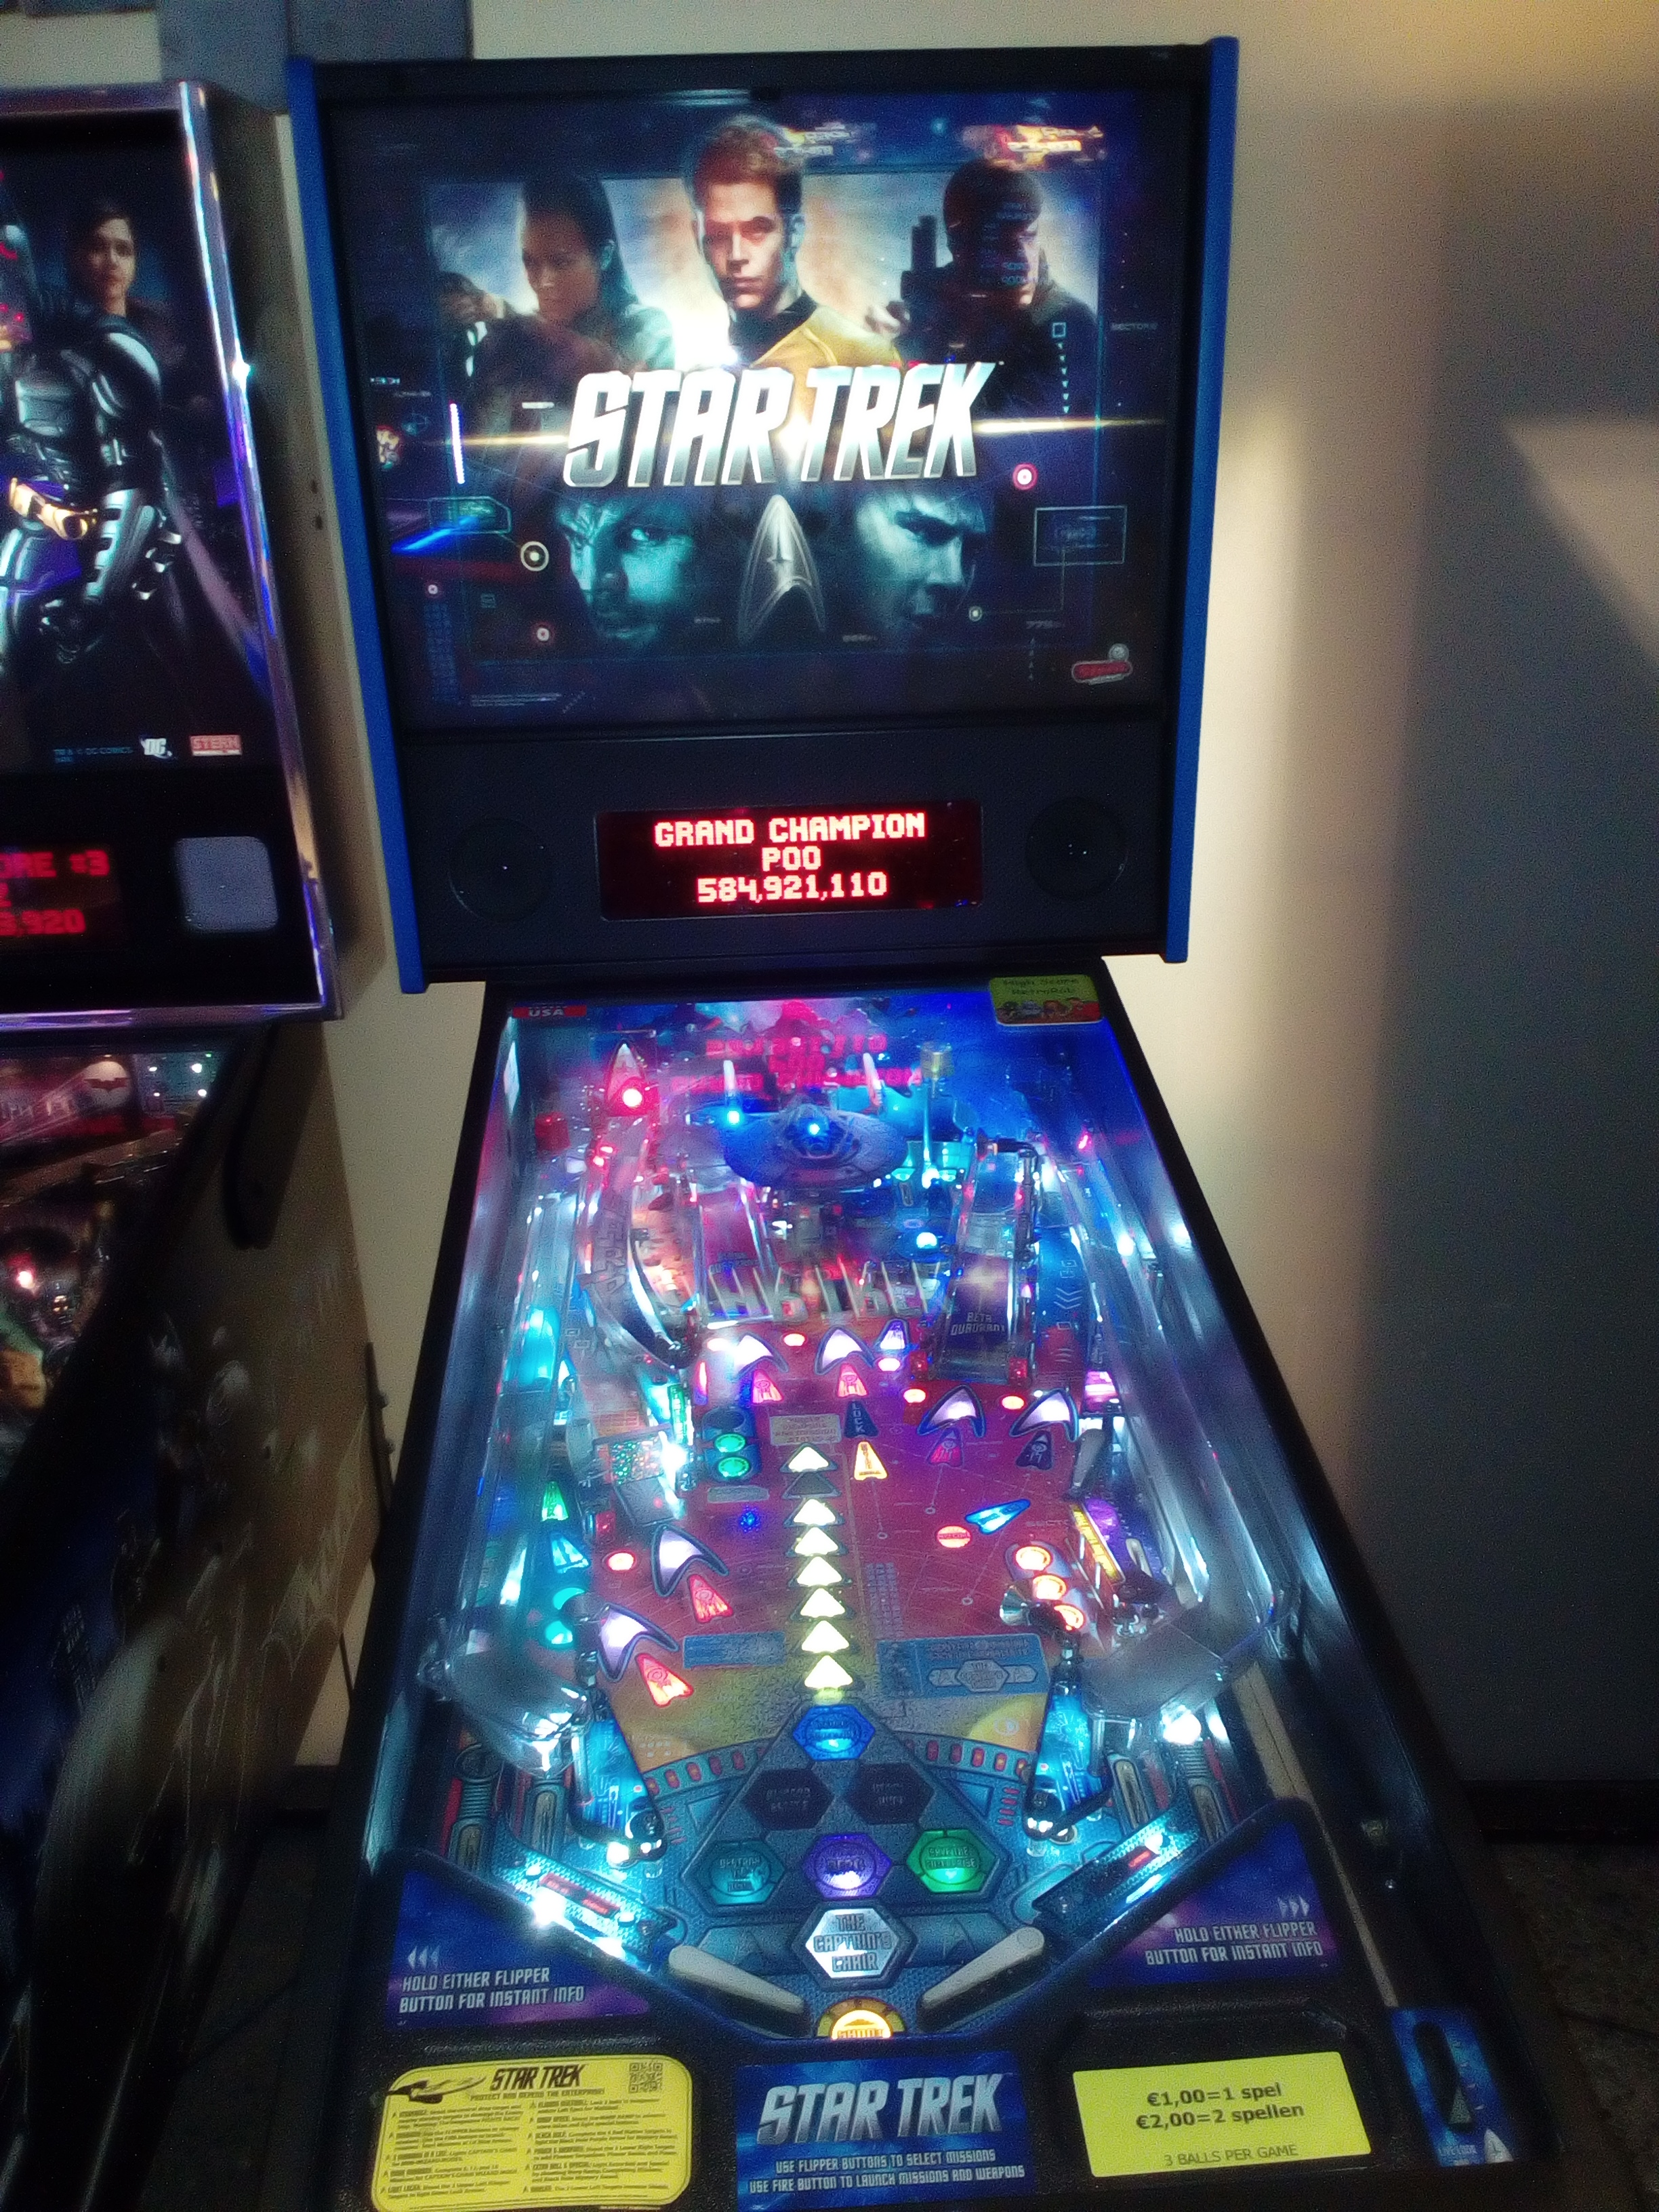 Star Trek (2013 pinball) 4,900,980 points